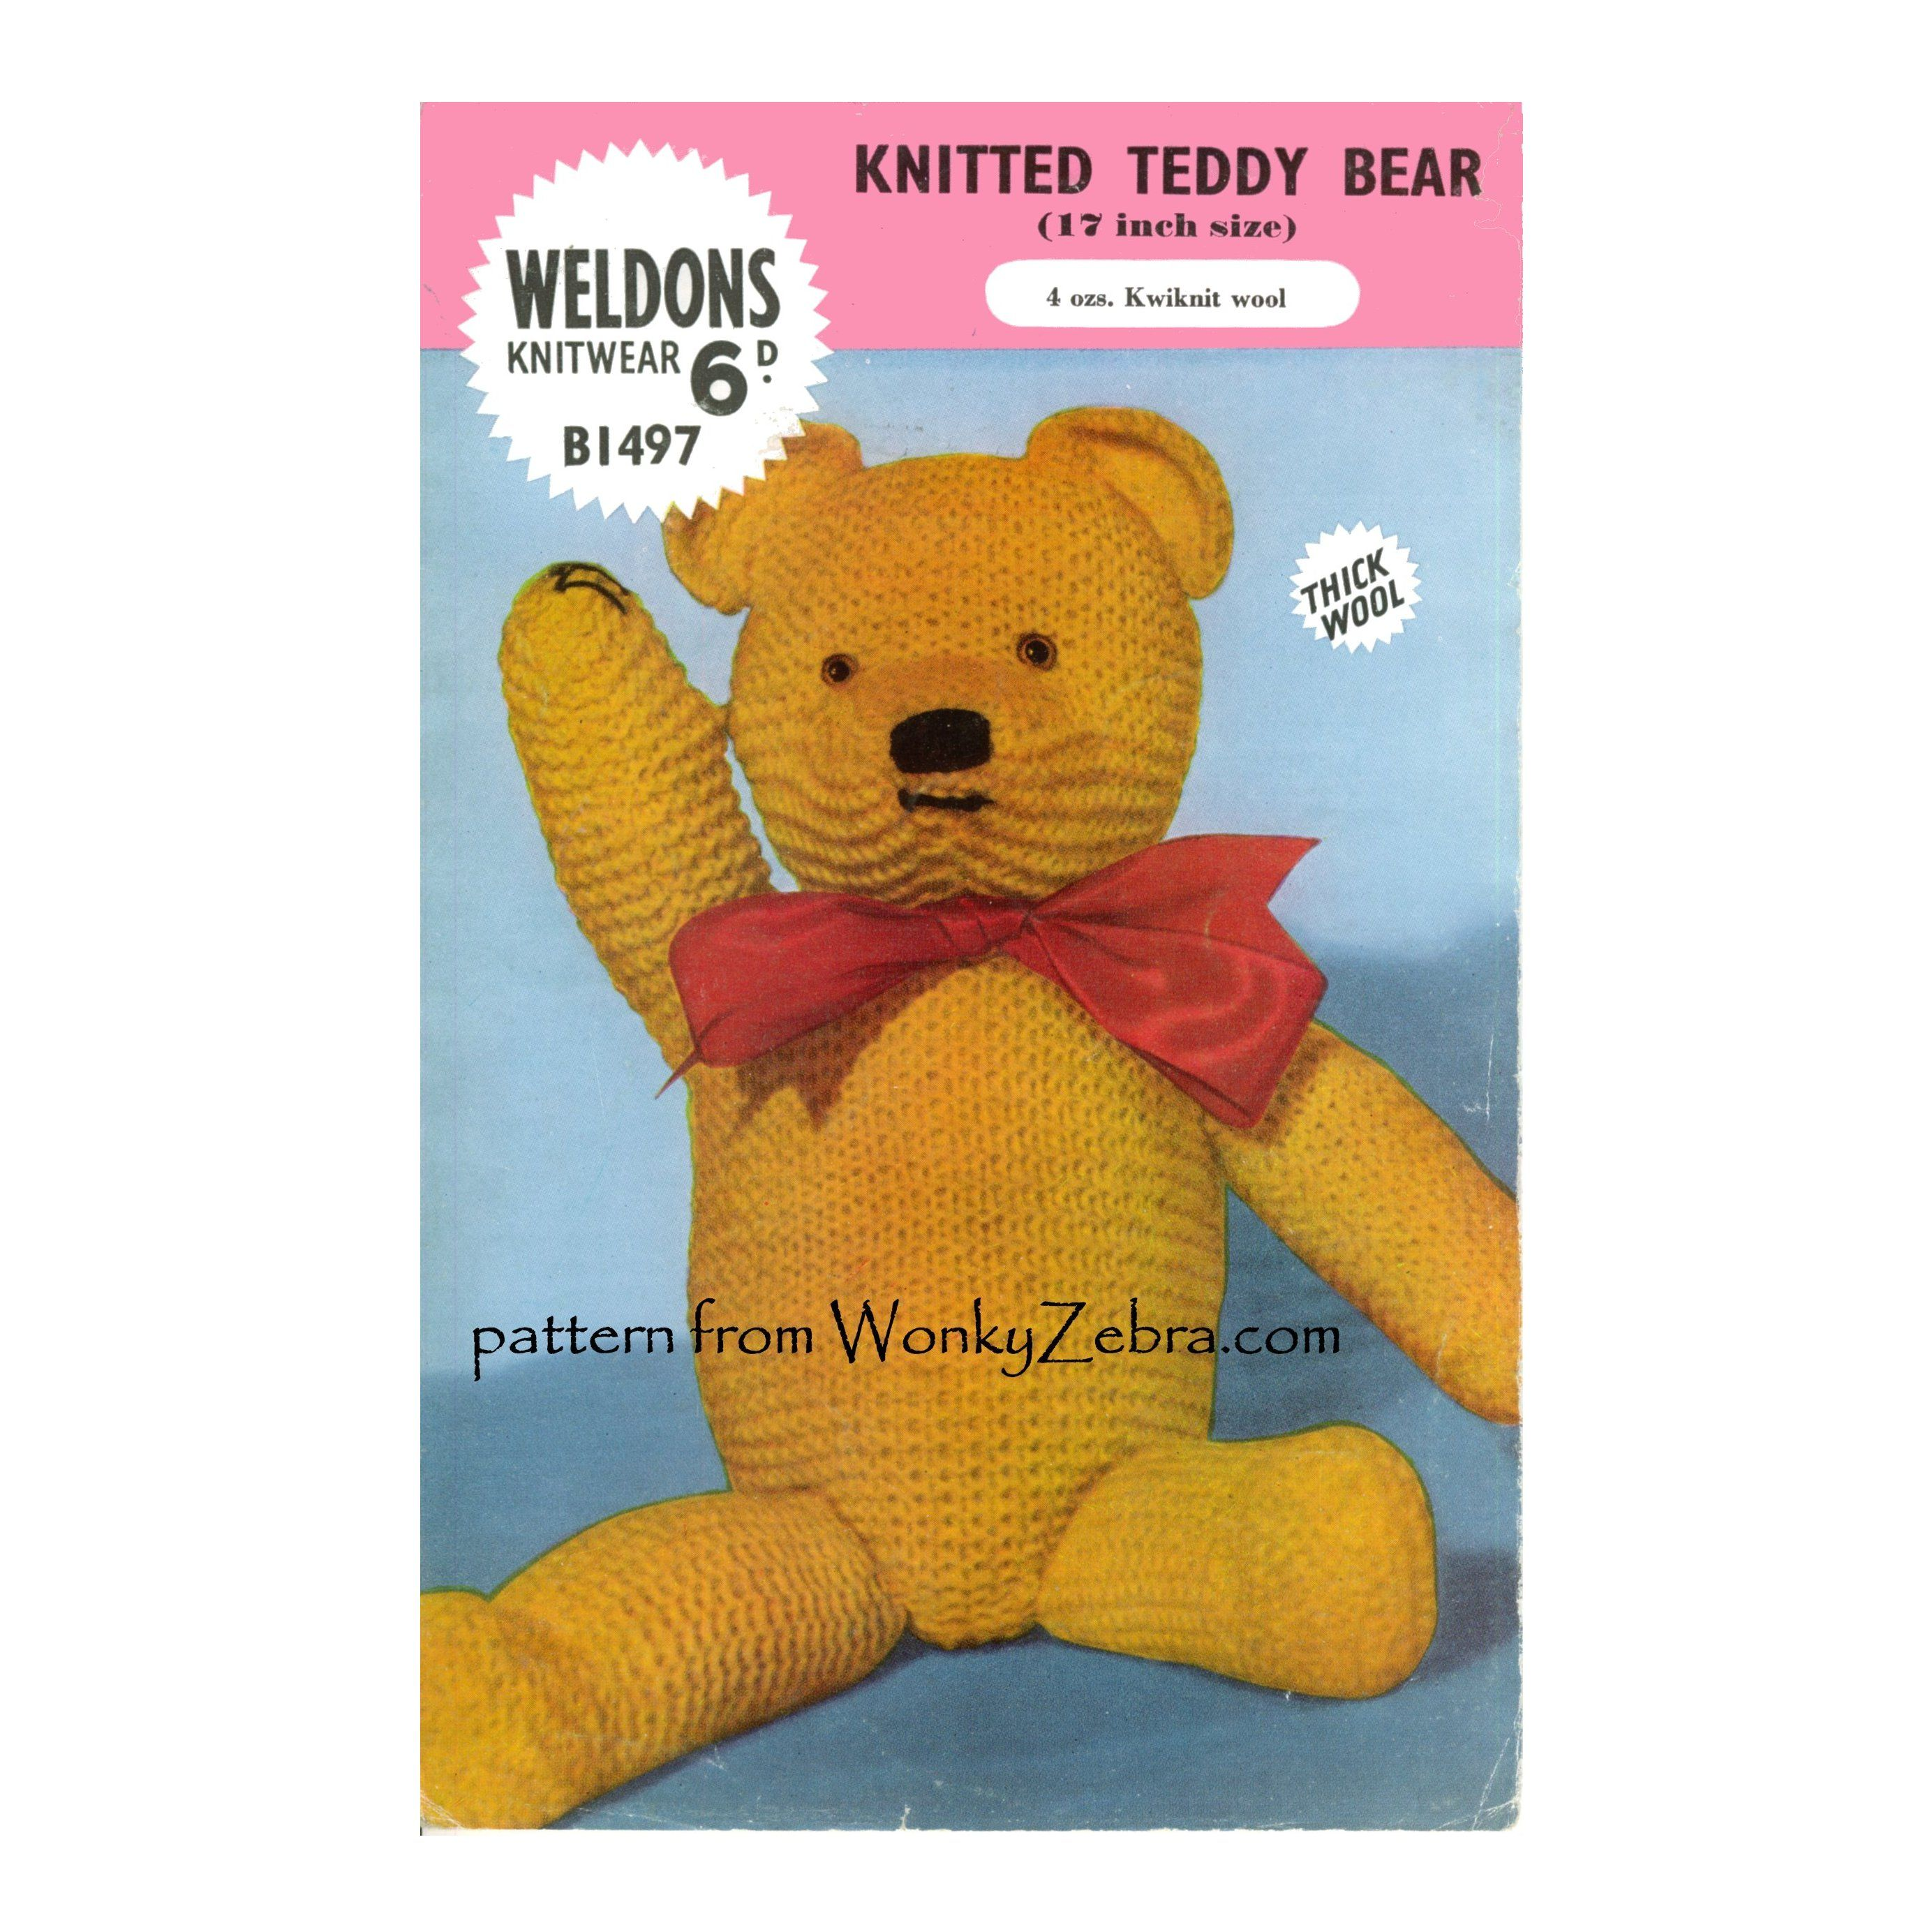 Weldons b1497 vintage knitting pattern for a little teddy bear weldons b1497 vintage knitting pattern for a little teddy bear wz464 from wonkyzebra bankloansurffo Gallery